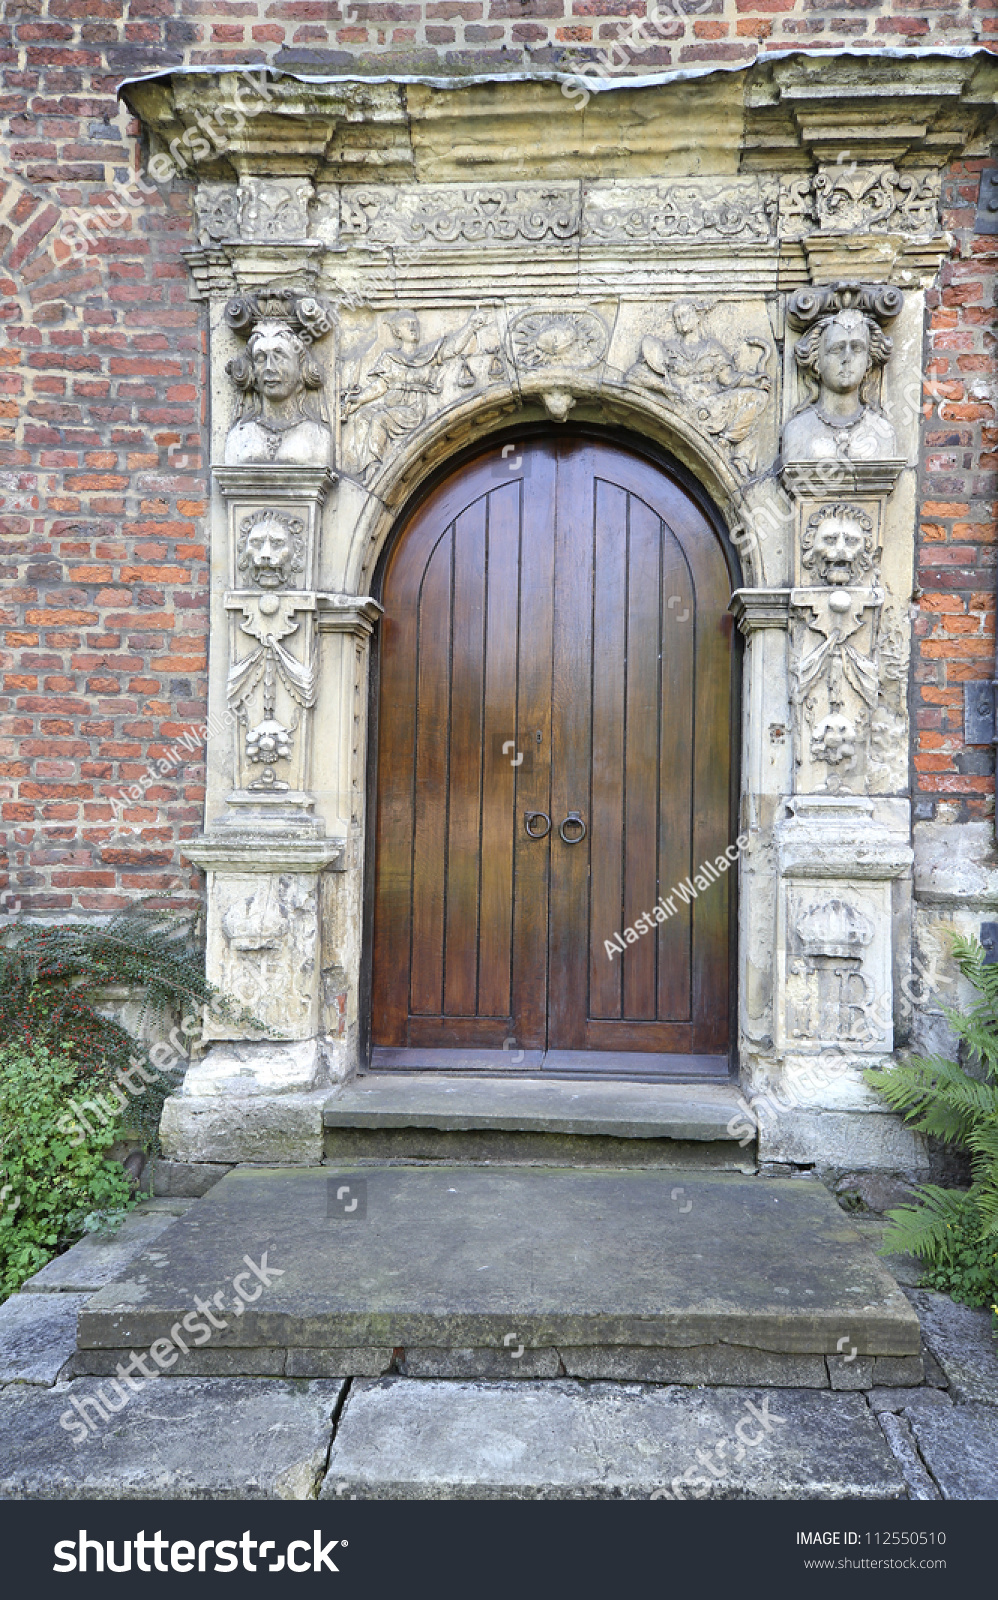 Elizabethan Door King\u0027s Manor York England & Elizabethan Door Kings Manor York England Stock Photo 112550510 ... Pezcame.Com